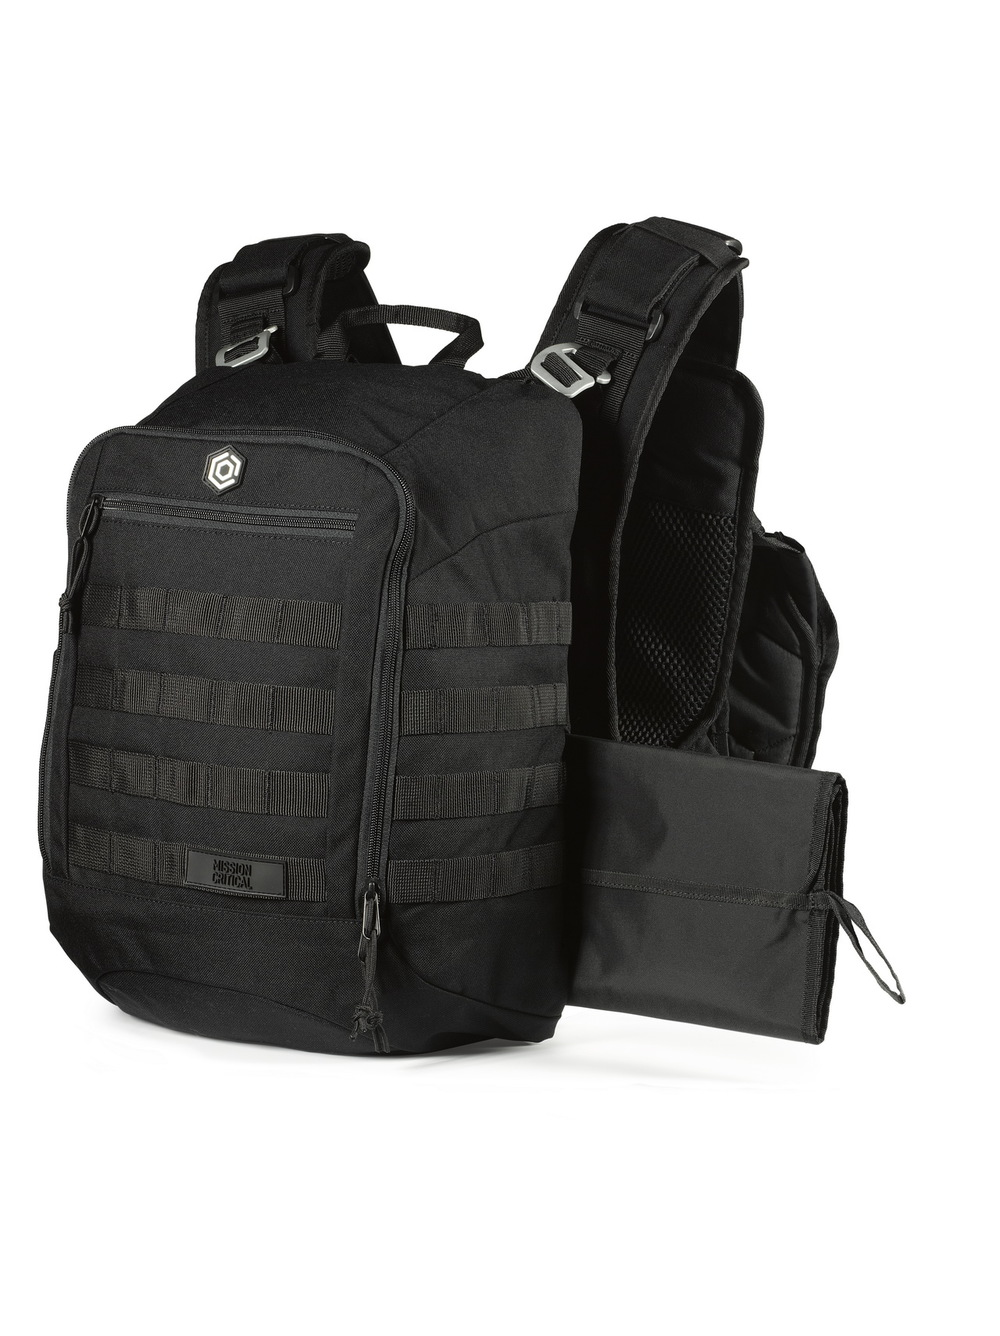 Mission Critical Carrier Daypack